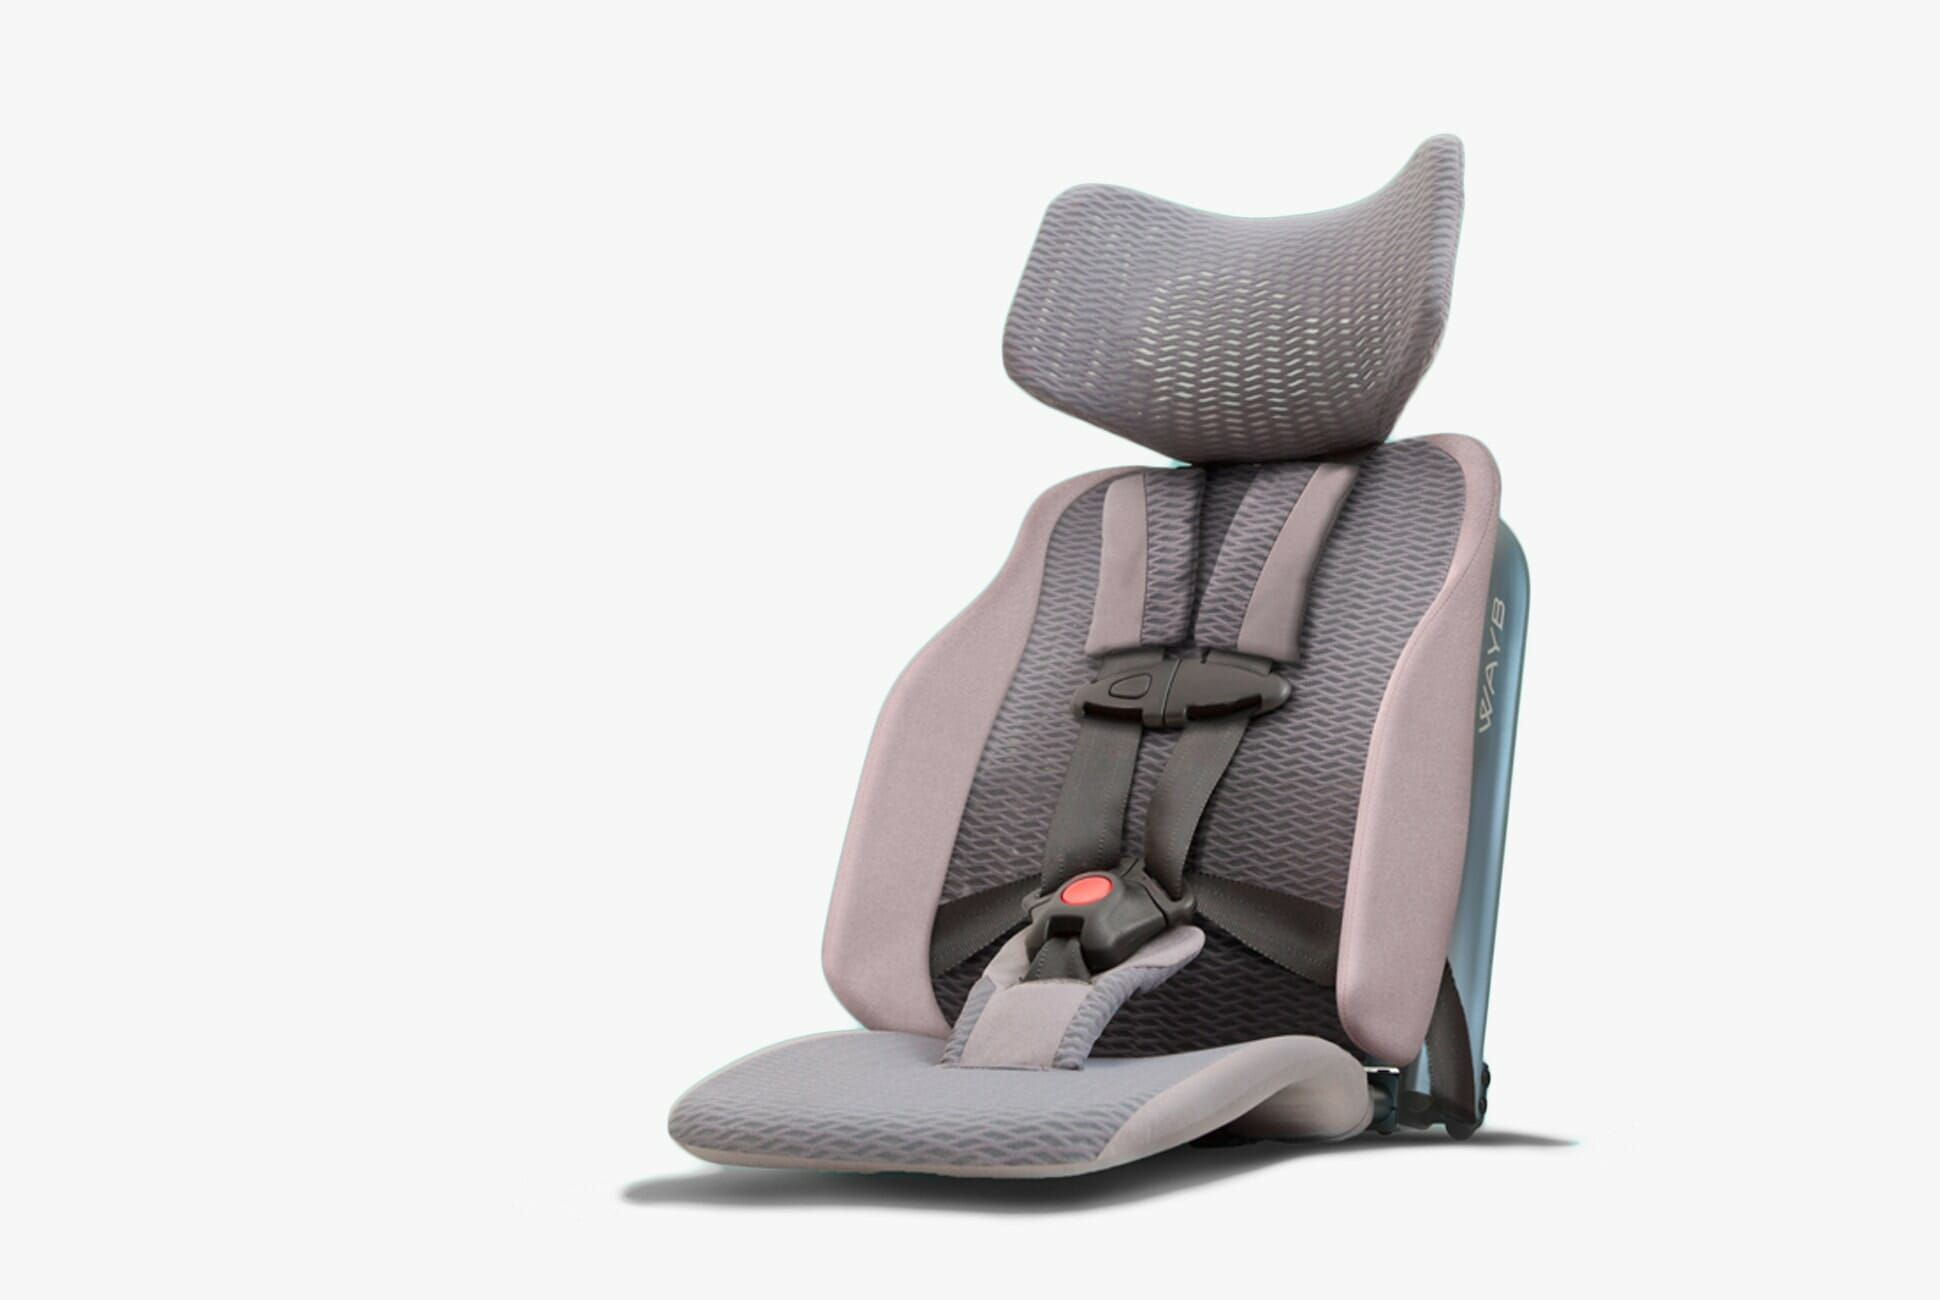 Patagonia's Former CEO Made a Car Seat and